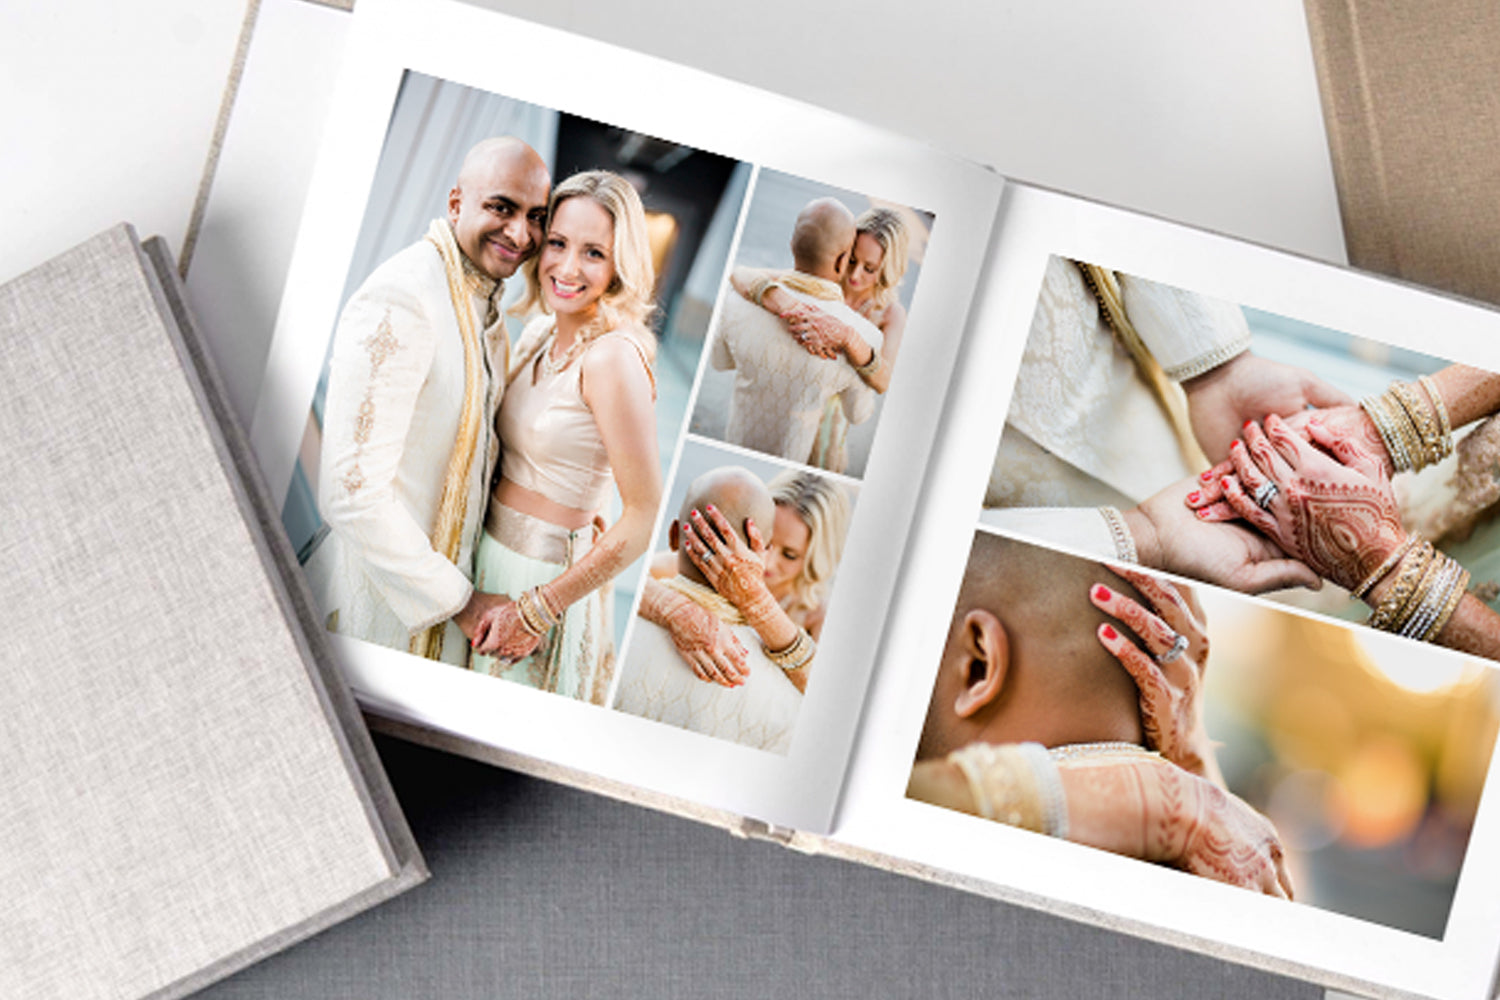 Fundy Designer photo album of a couple placed on a desk